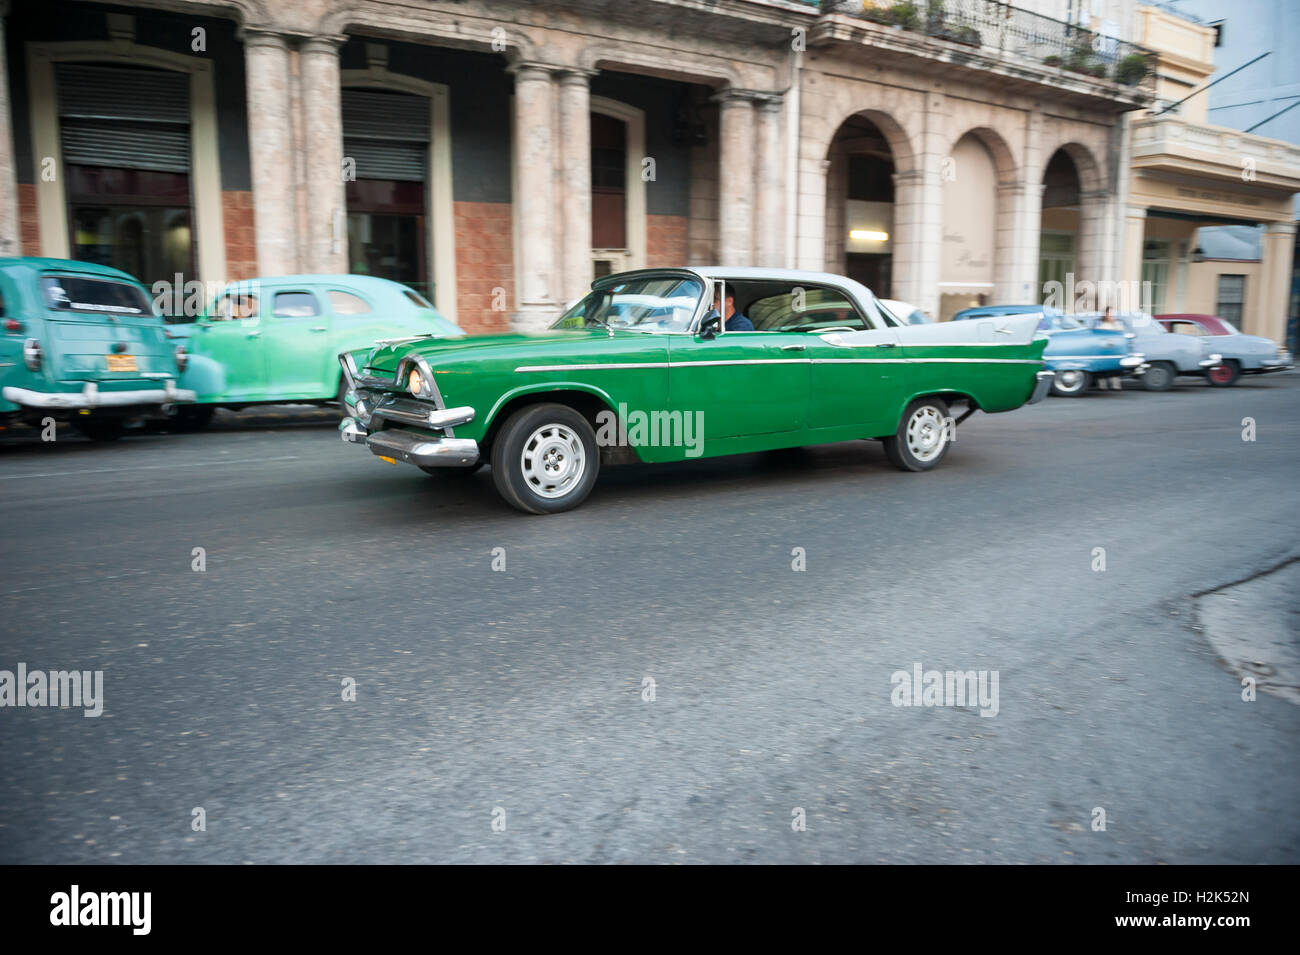 HAVANA - JUNE 15, 2011: Old American car drives in front of the traditional architecture of a colonial arcade. - Stock Image